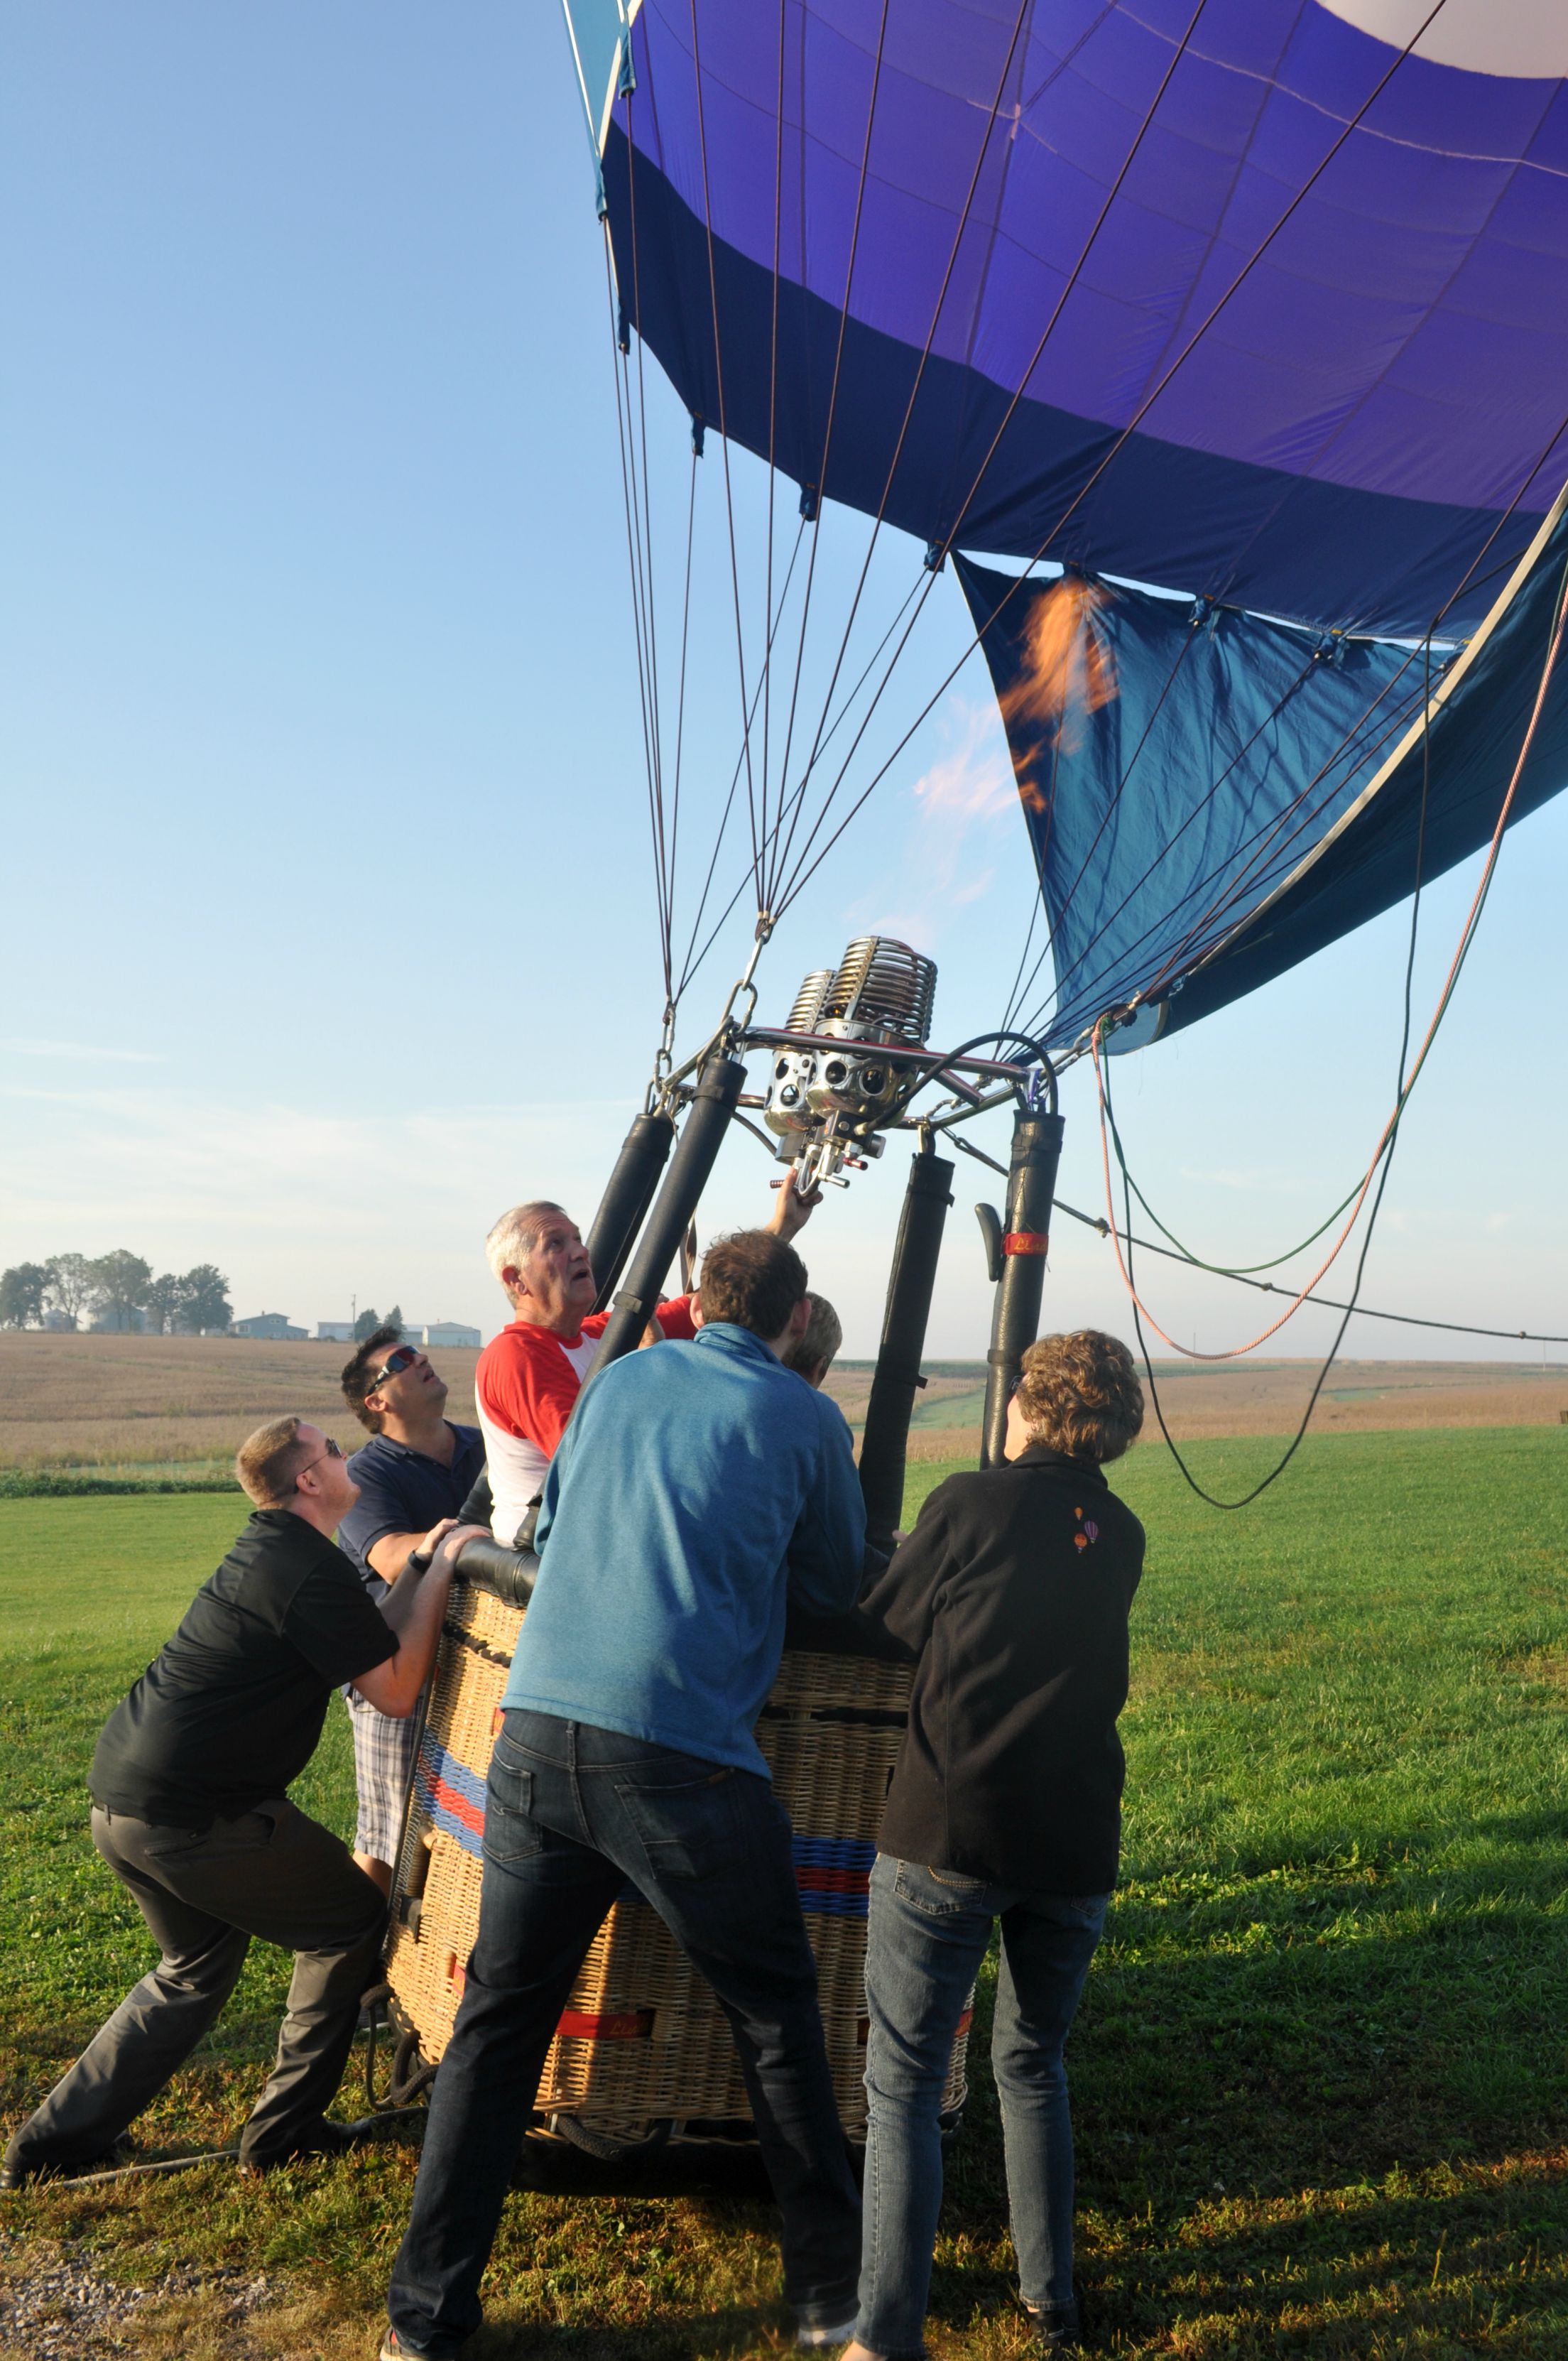 The ground team helps get the balloon upright for take off.